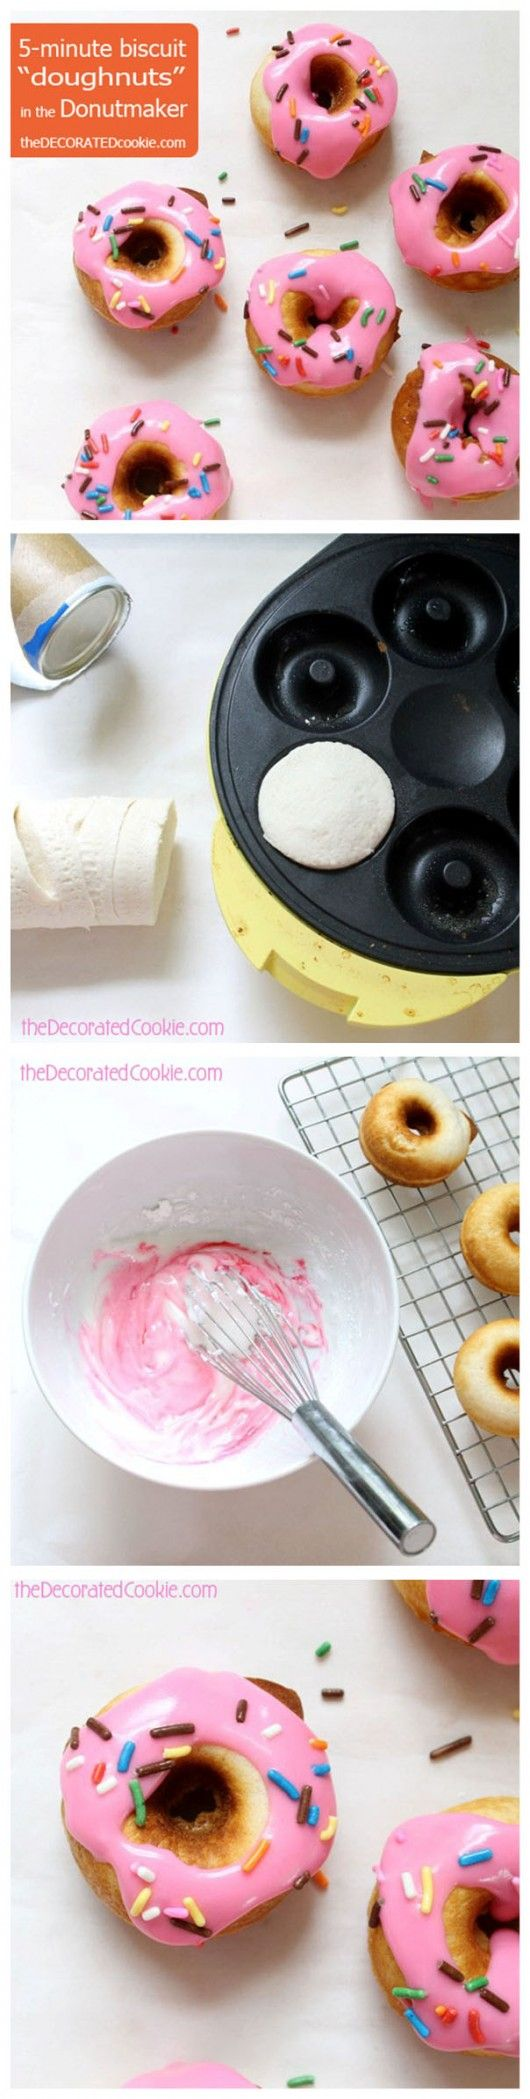 Make adorable doughnuts in 5 minutes using refrigerated biscuit dough!!